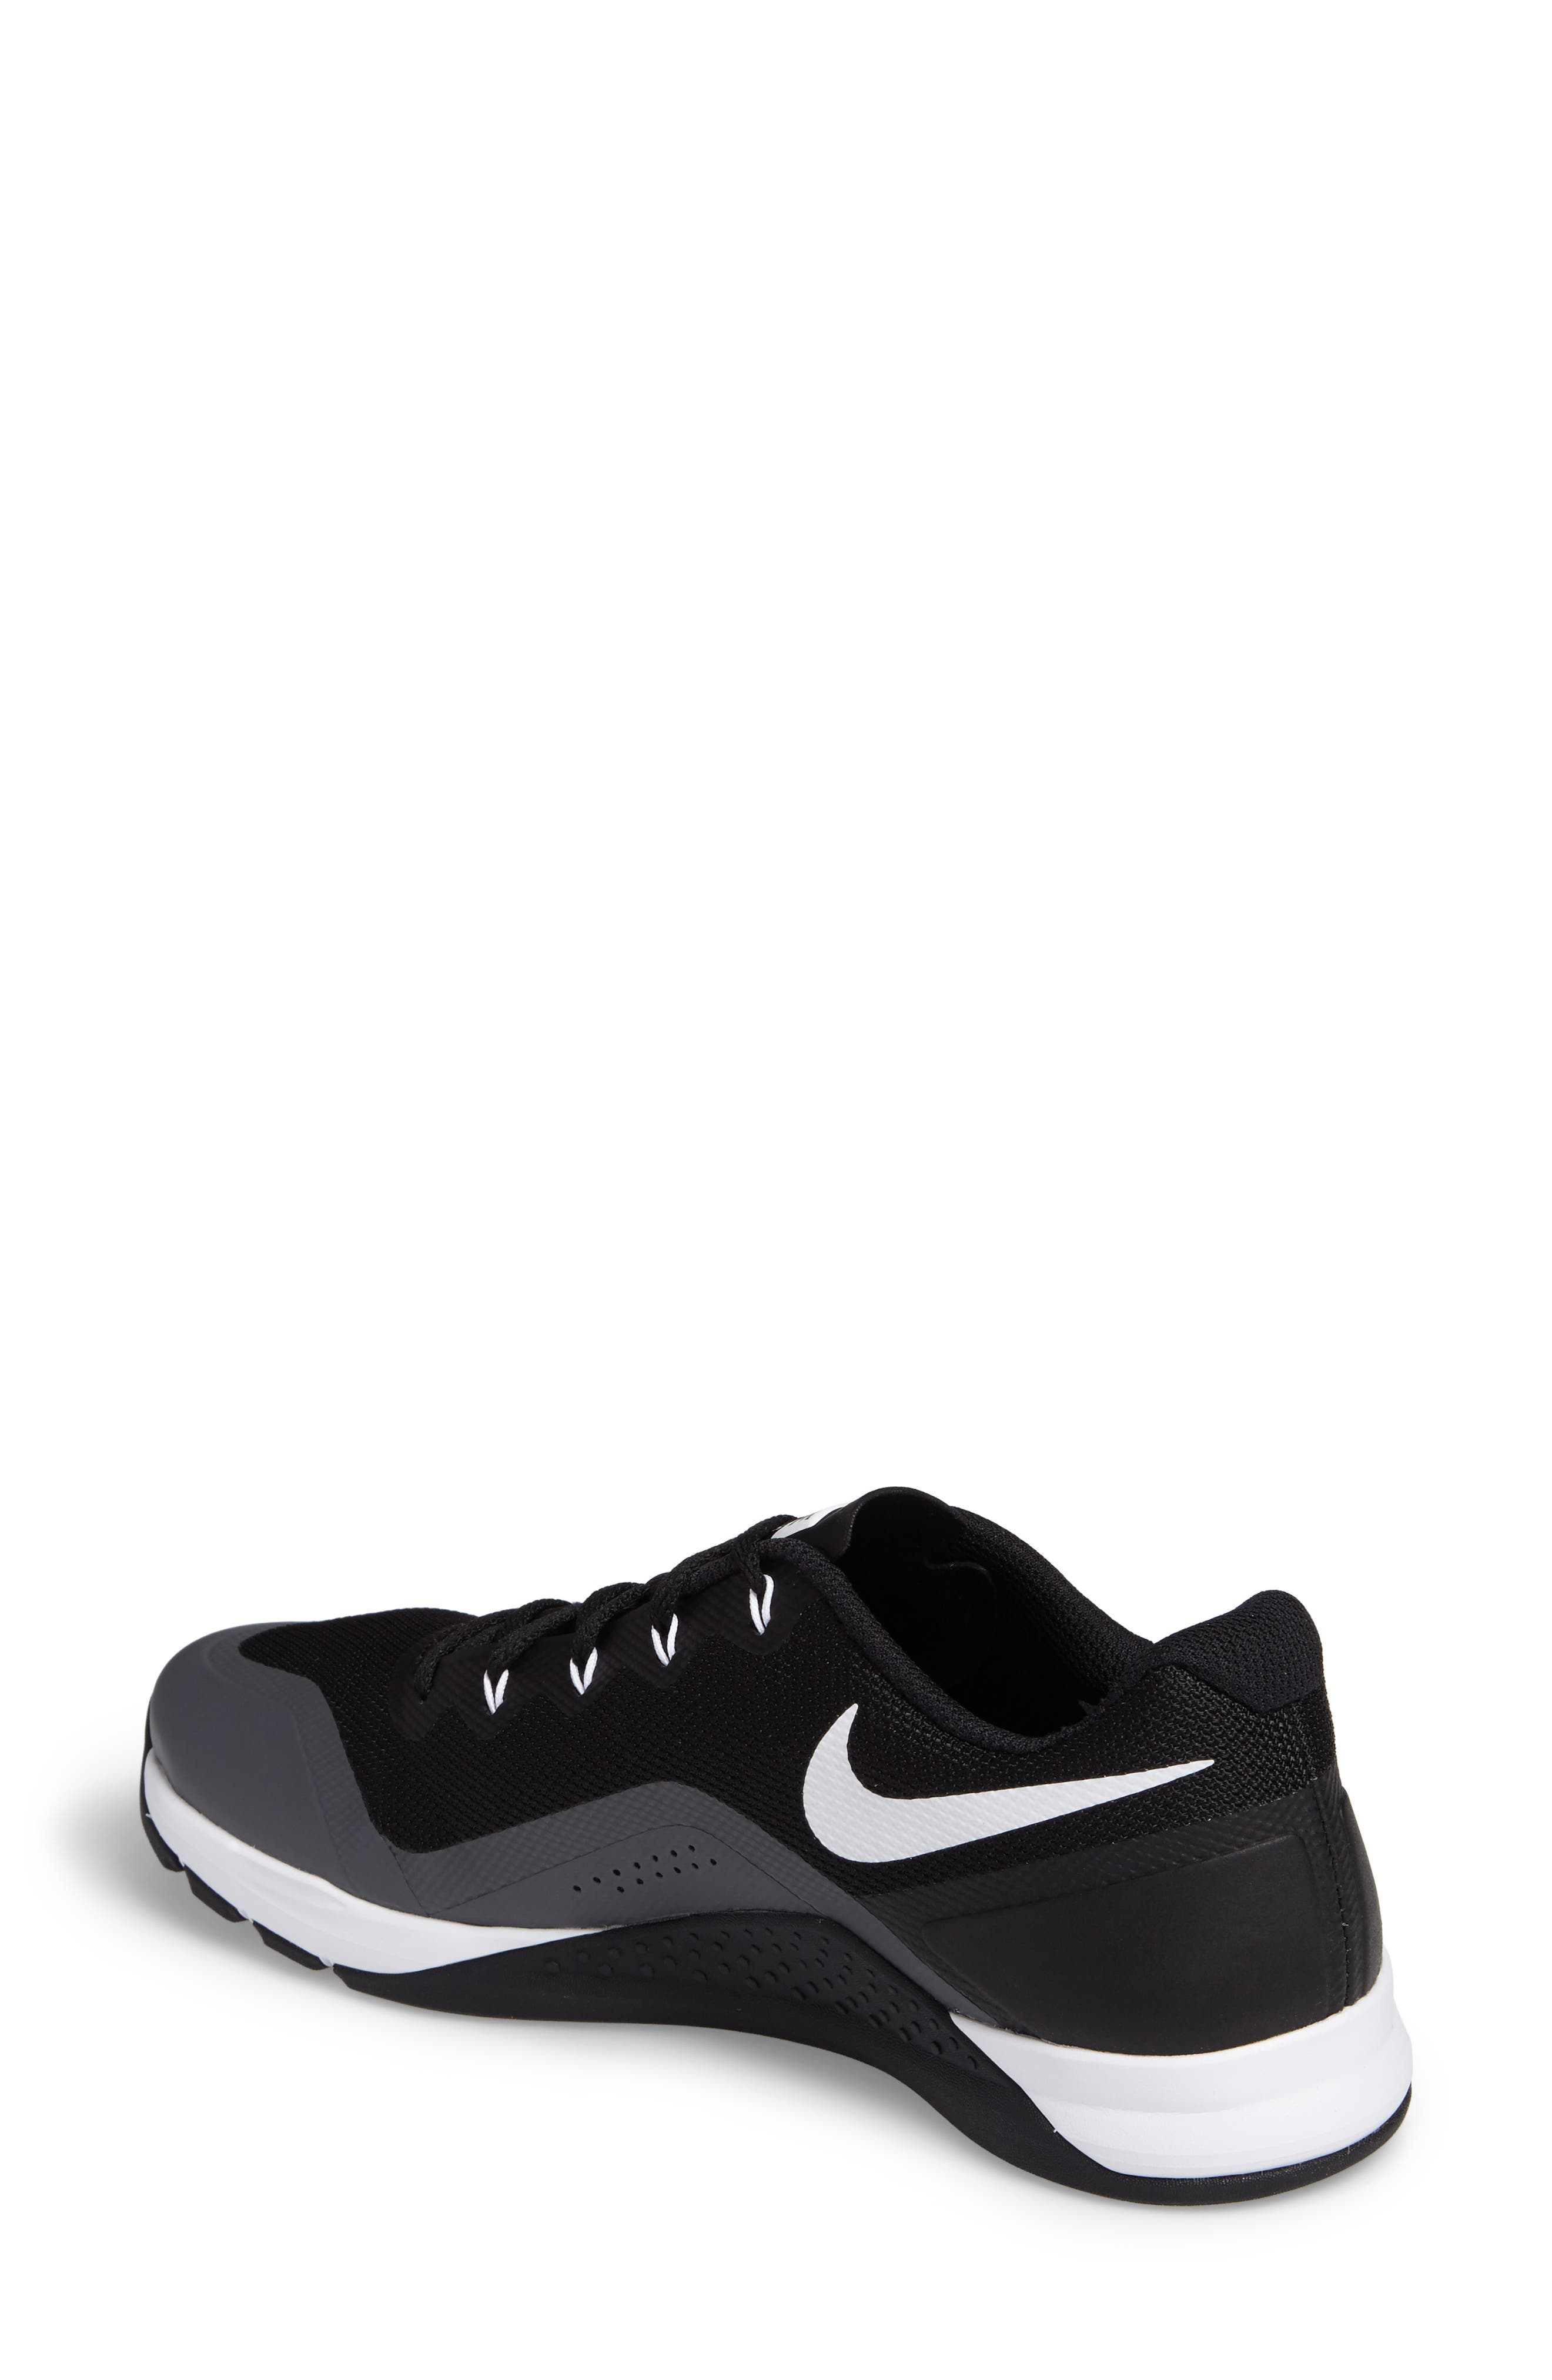 NIKE,                             Metcon Repper DSX Training Shoe,                             Alternate thumbnail 2, color,                             007